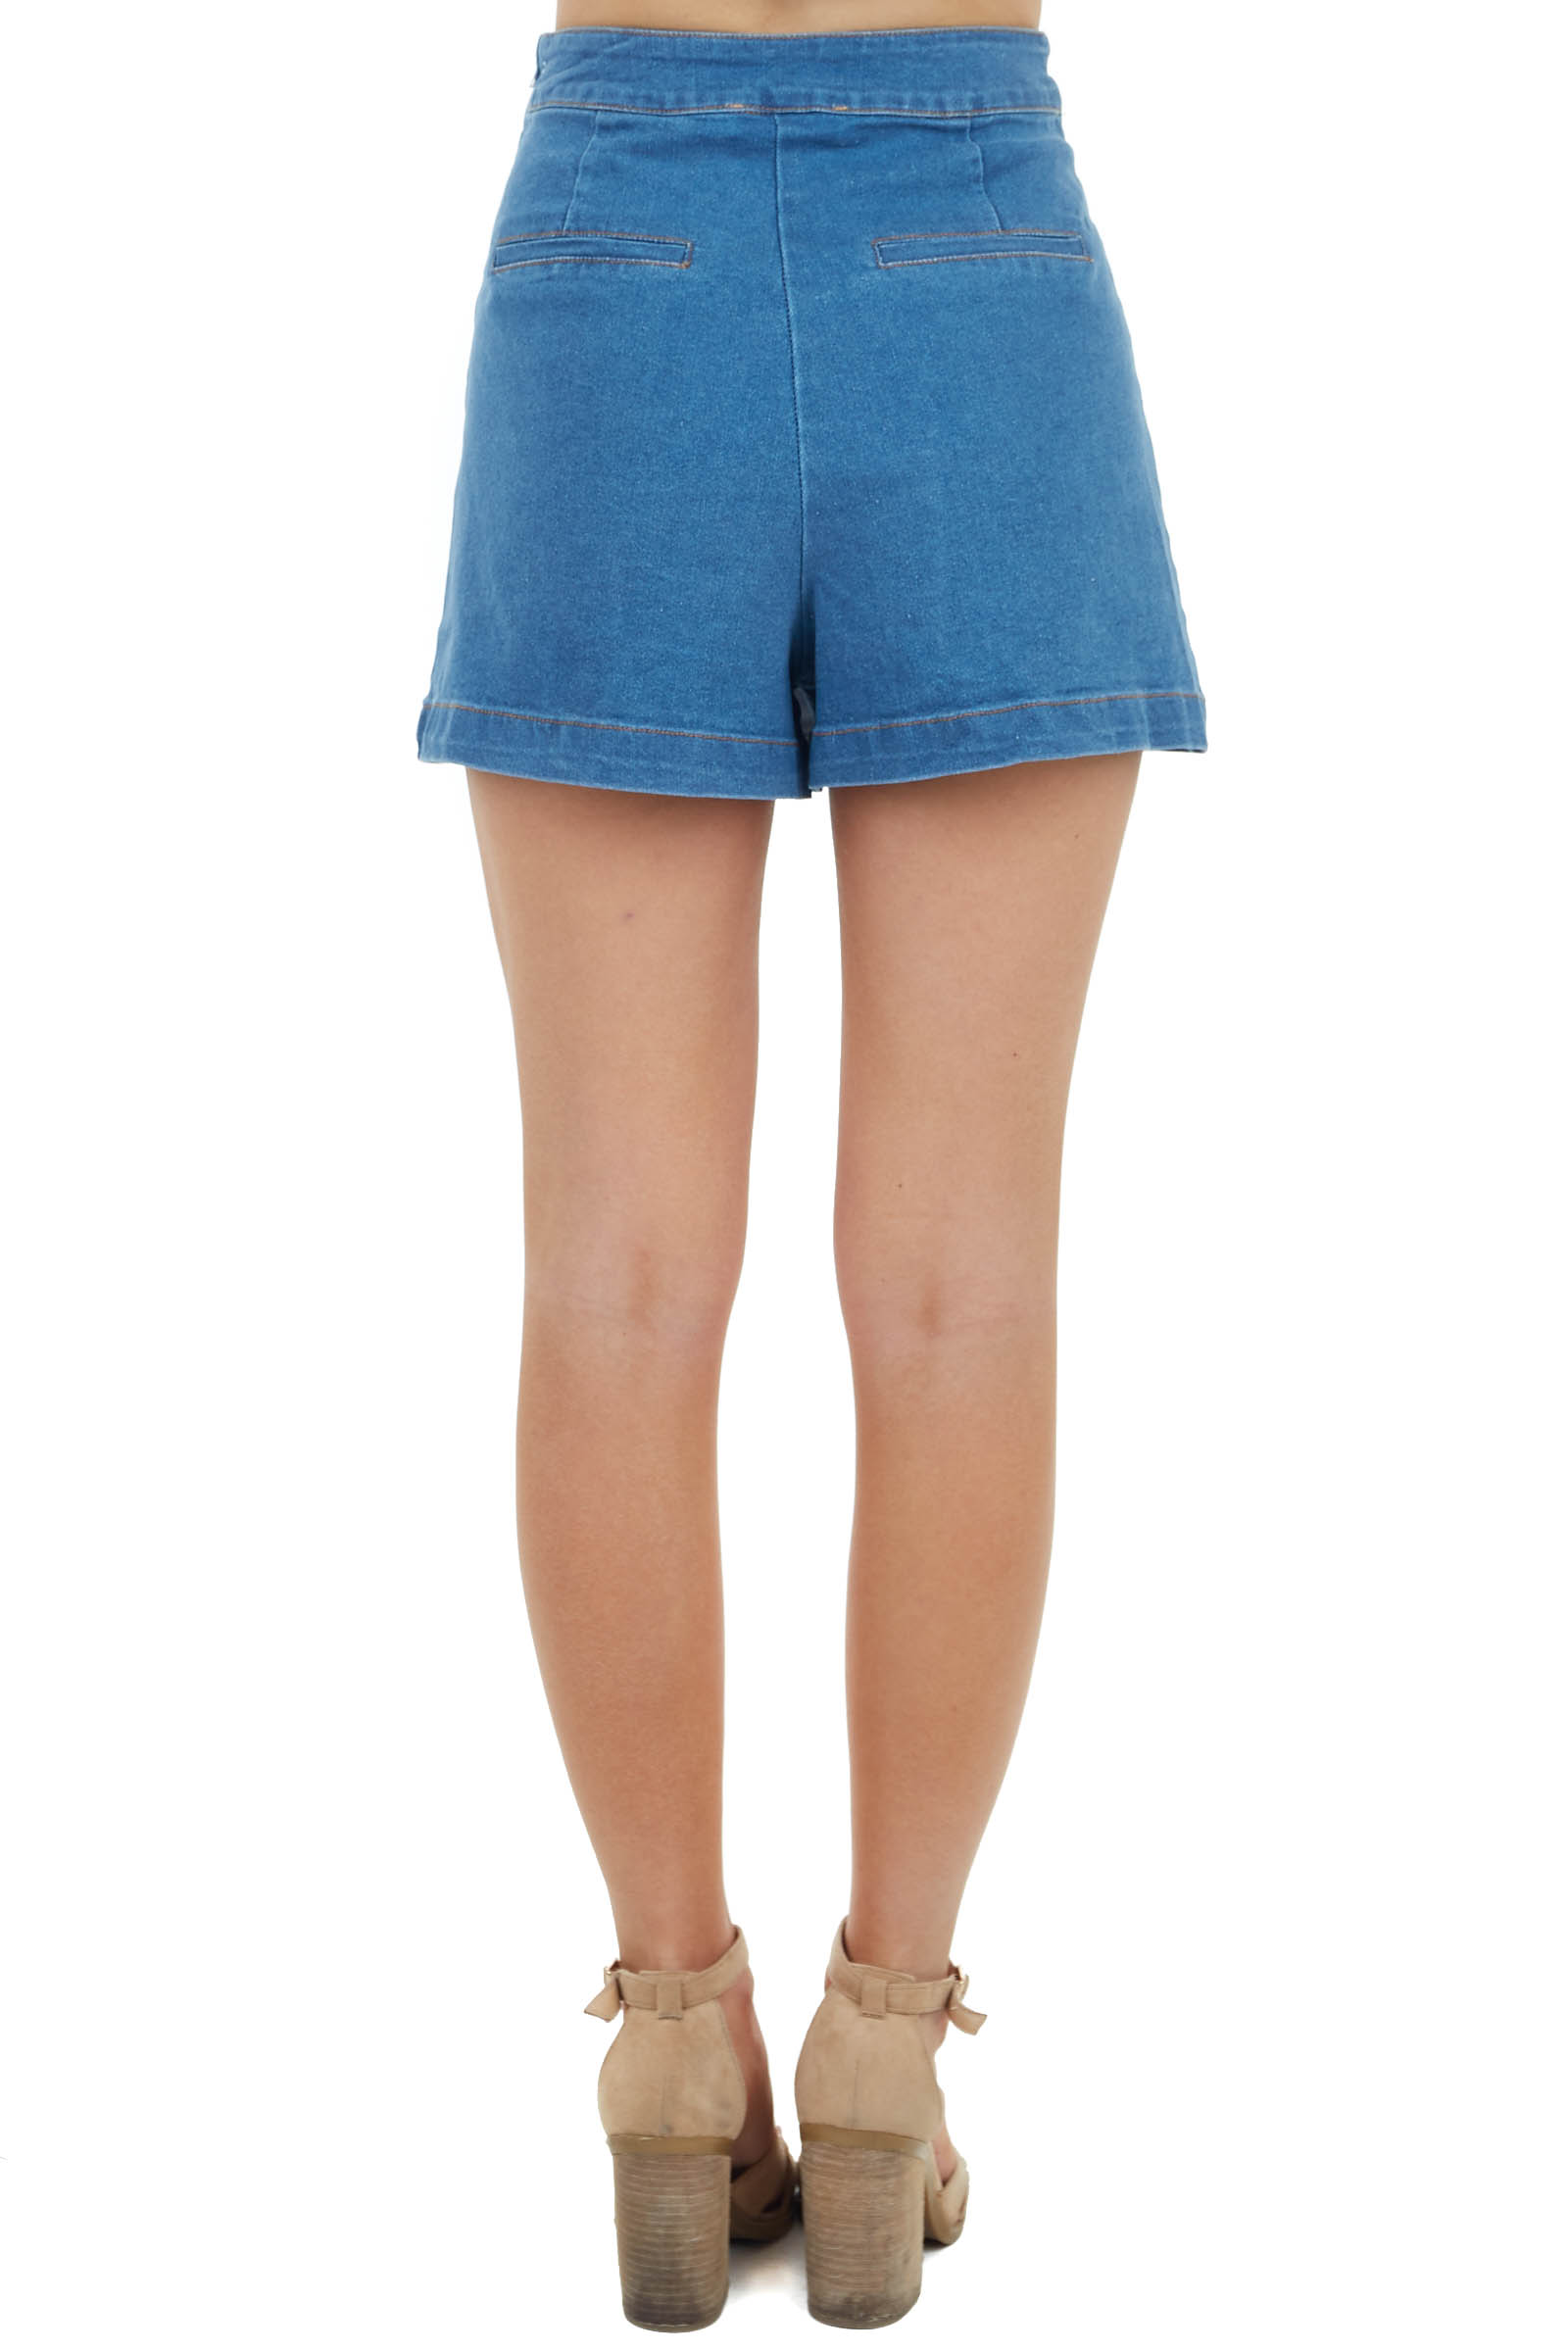 Dark Wash Denim Skort with Zip Up Side and Faux Back Pockets